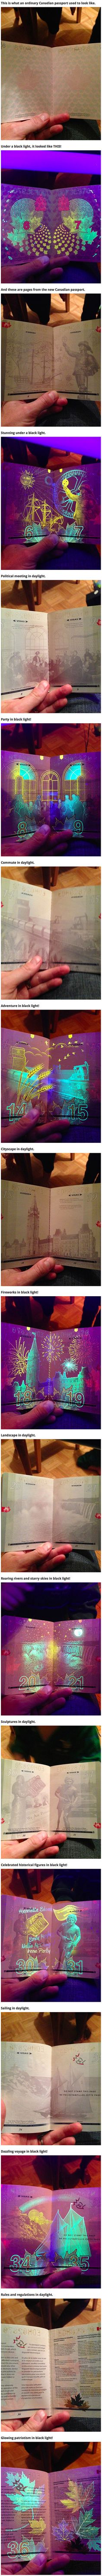 The Canadian passport has potentially earned the unexpected distinction of being the coolest passport. The pages of the new passport (released in are covered in fun and colorful UV-reactive images that can only be seen under a blacklight. My Tumblr, Tumblr Stuff, Canadian Passport, Memes, Secrets Revealed, Looks Cool, Image Shows, Cool Stuff, Mind Blown